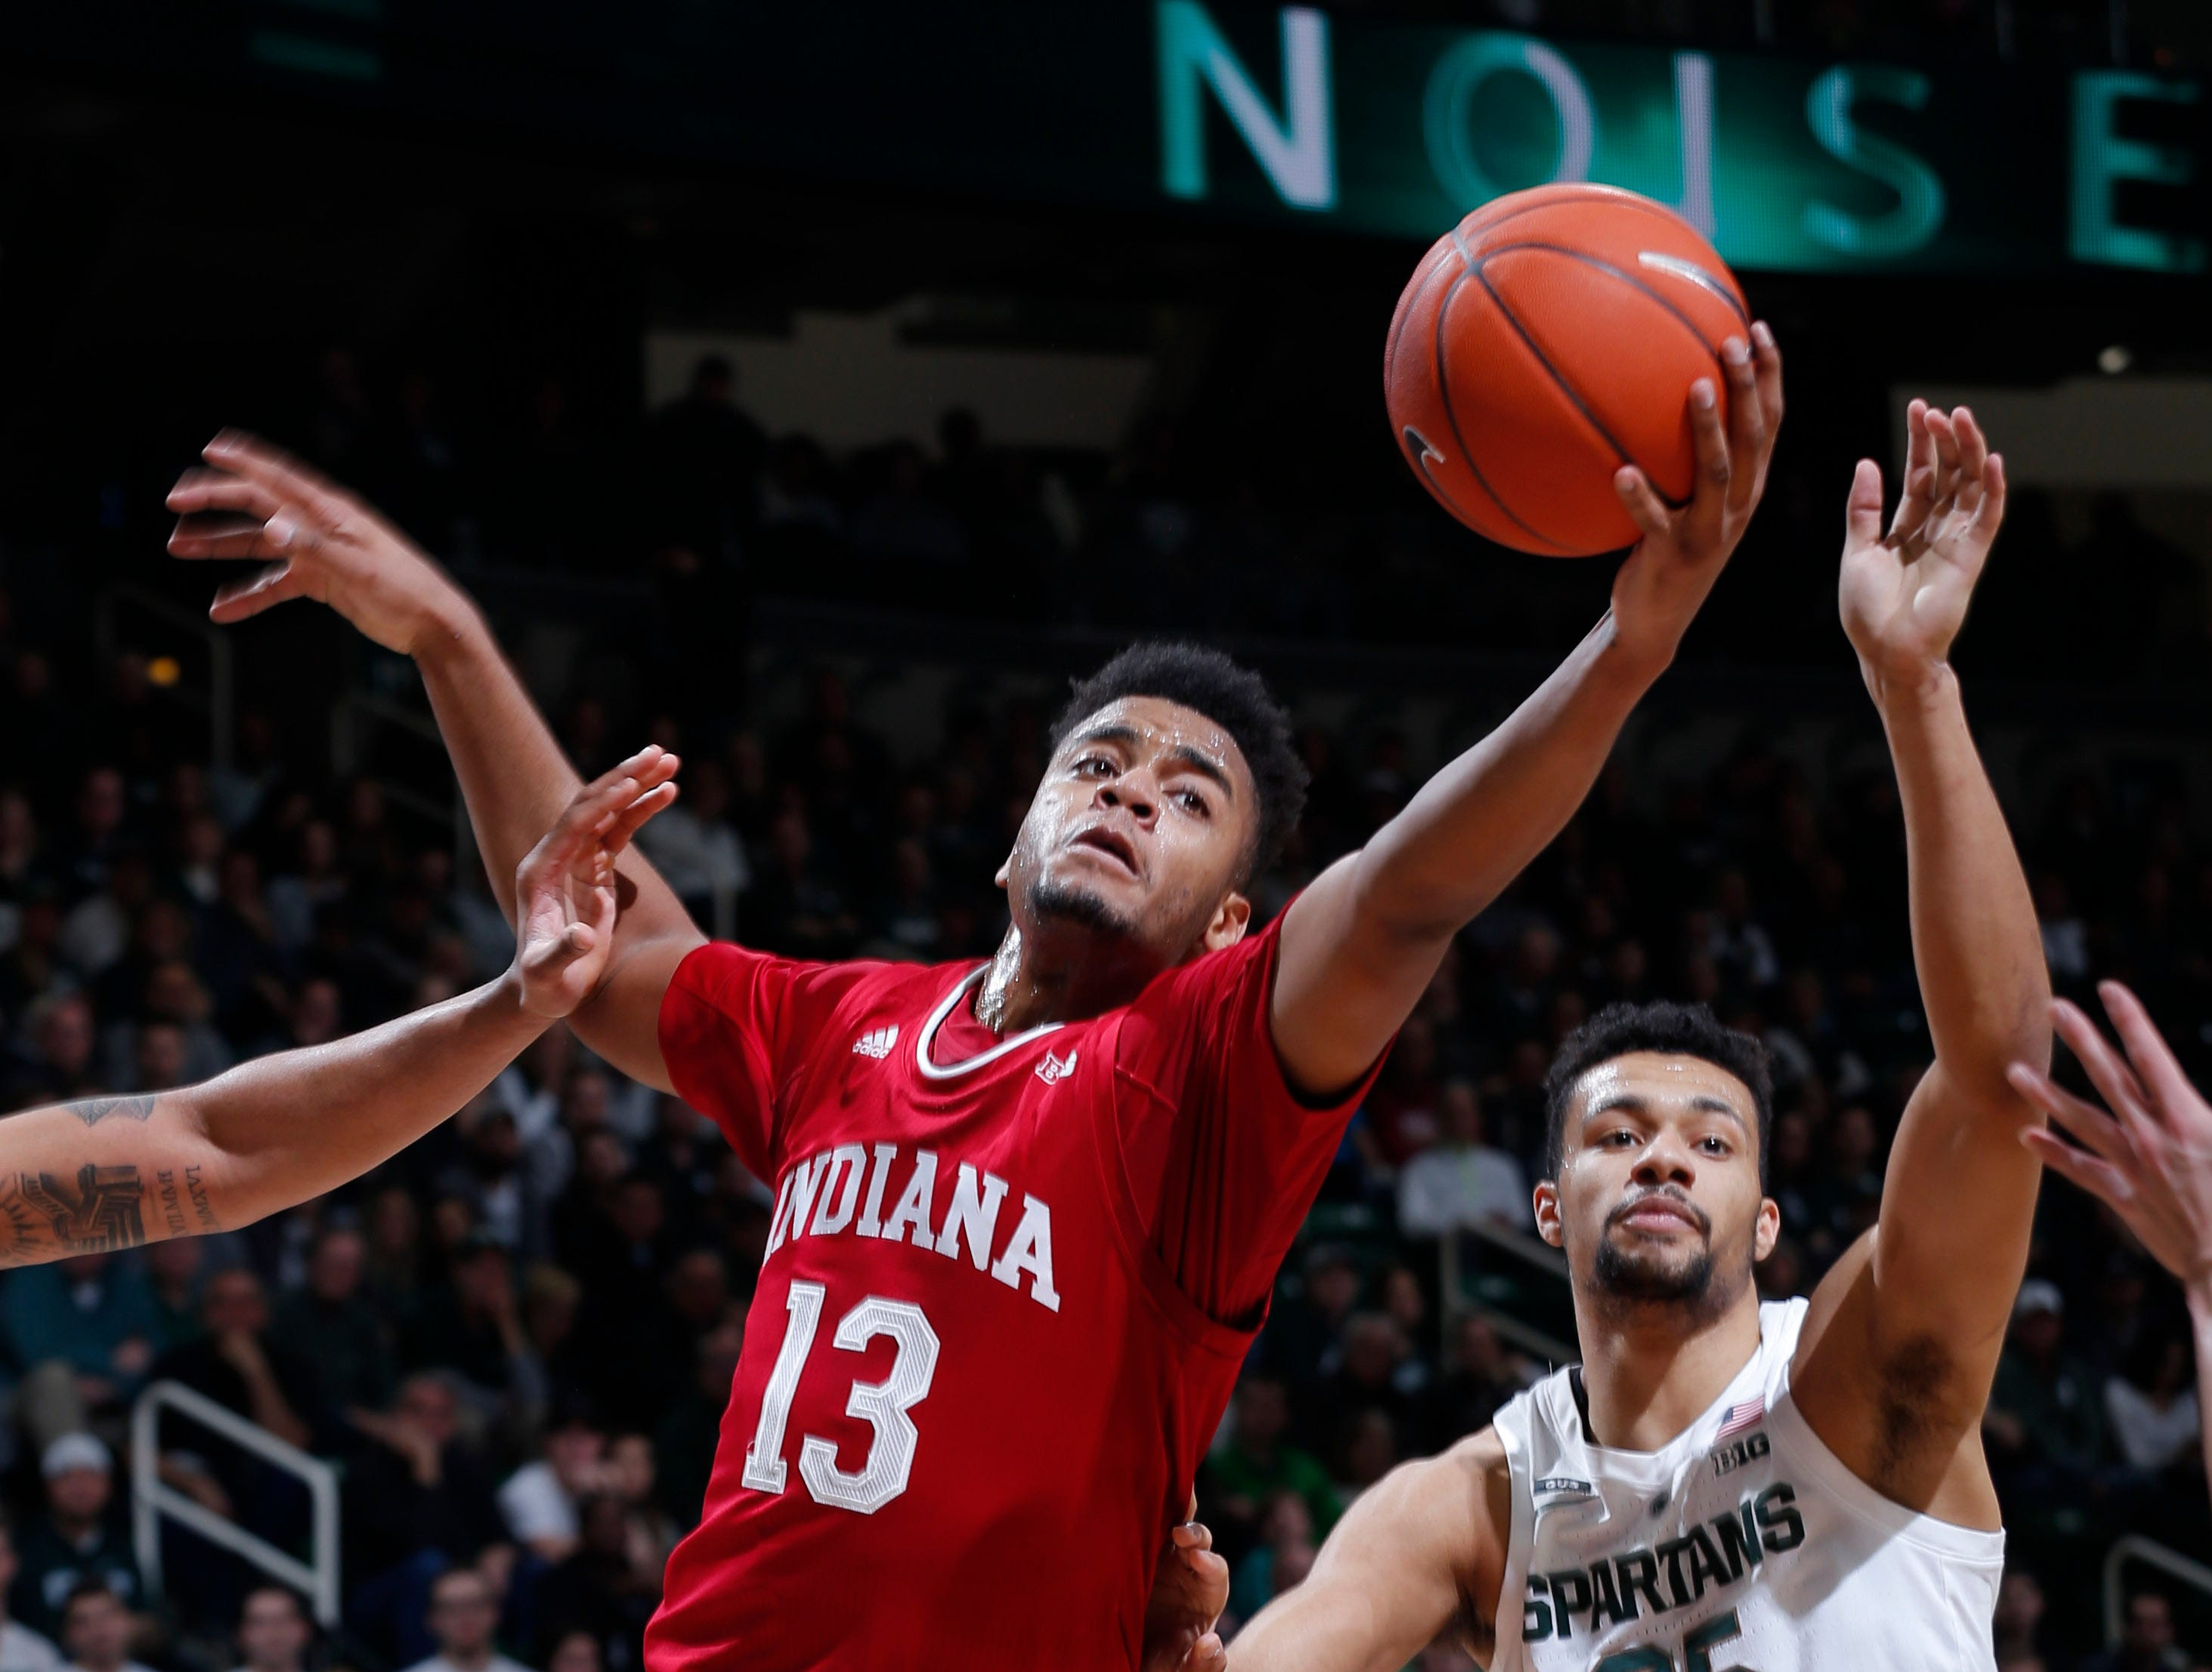 Indiana's Juwan Morgan (13) and Michigan State's Kenny Goins reach for a rebound during the first half of an NCAA college basketball game, Saturday, Feb. 2, 2019, in East Lansing, Mich.